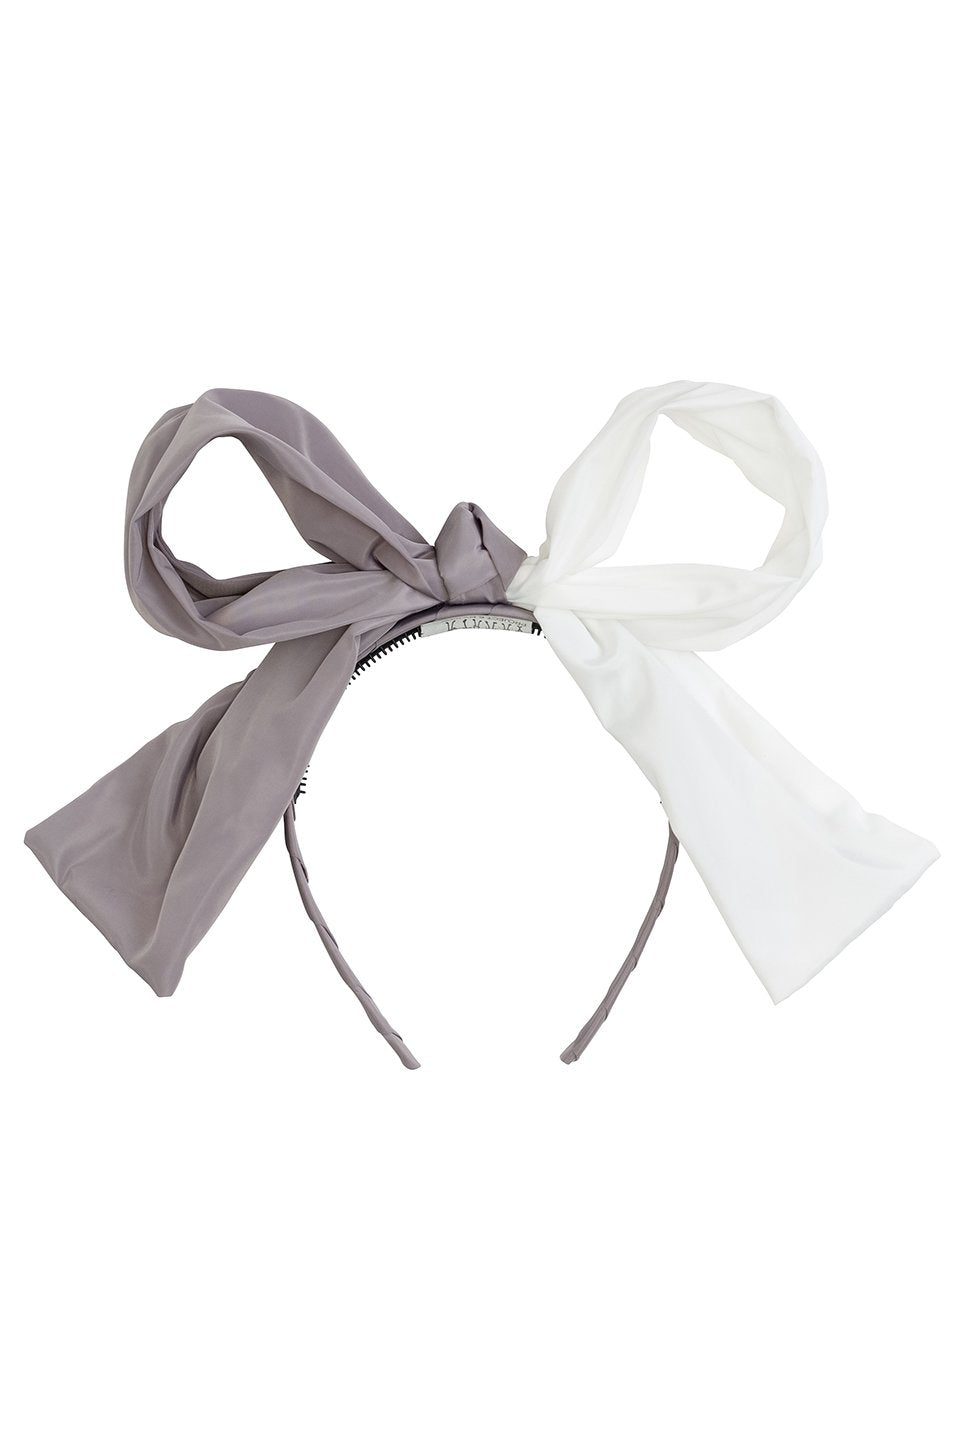 Sia Headband - White/Grey - PROJECT 6, modest fashion